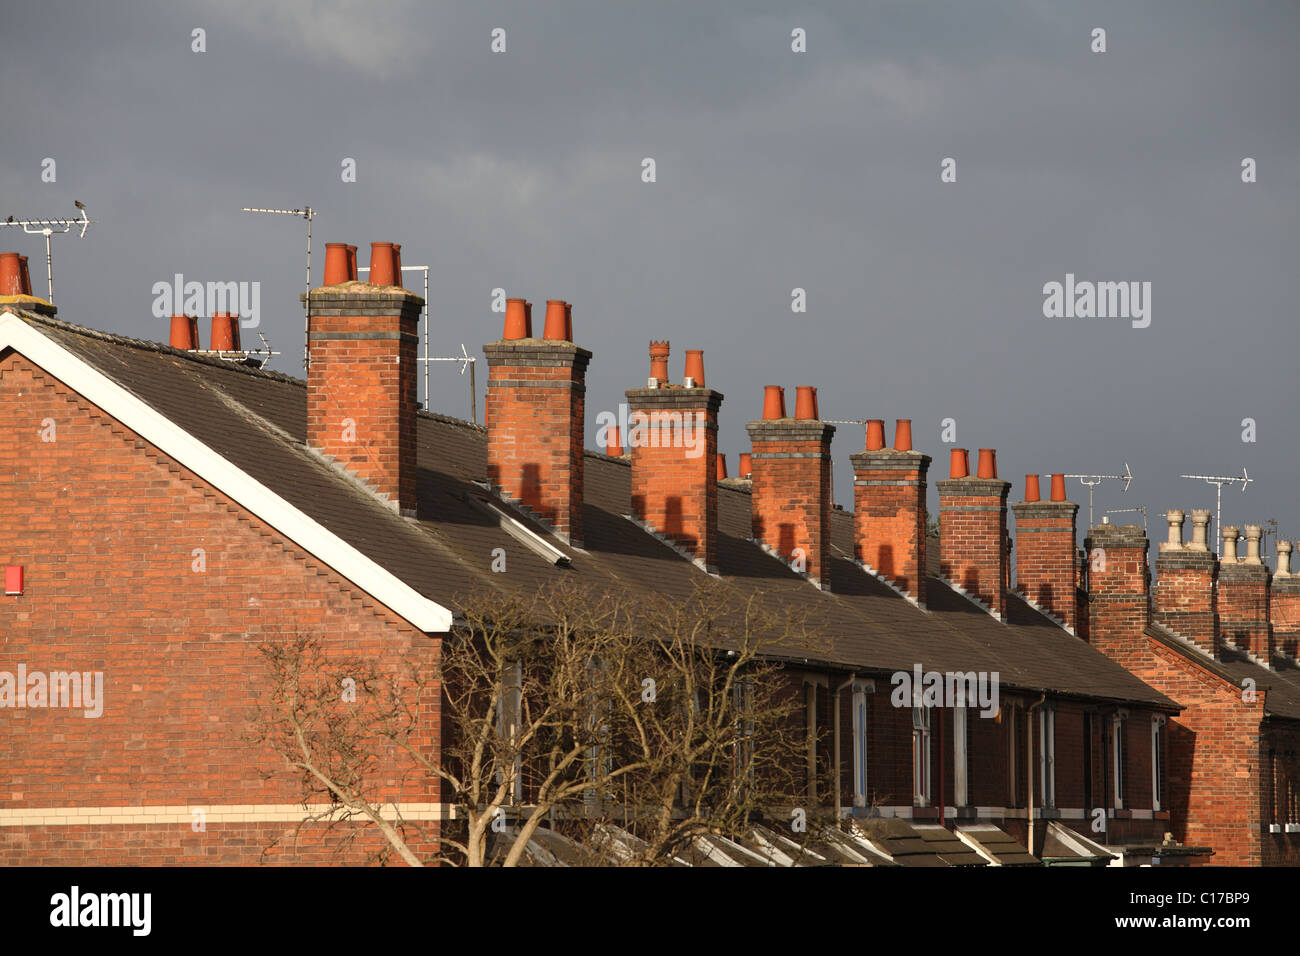 Chimneys on row of terrace houses - Stock Image